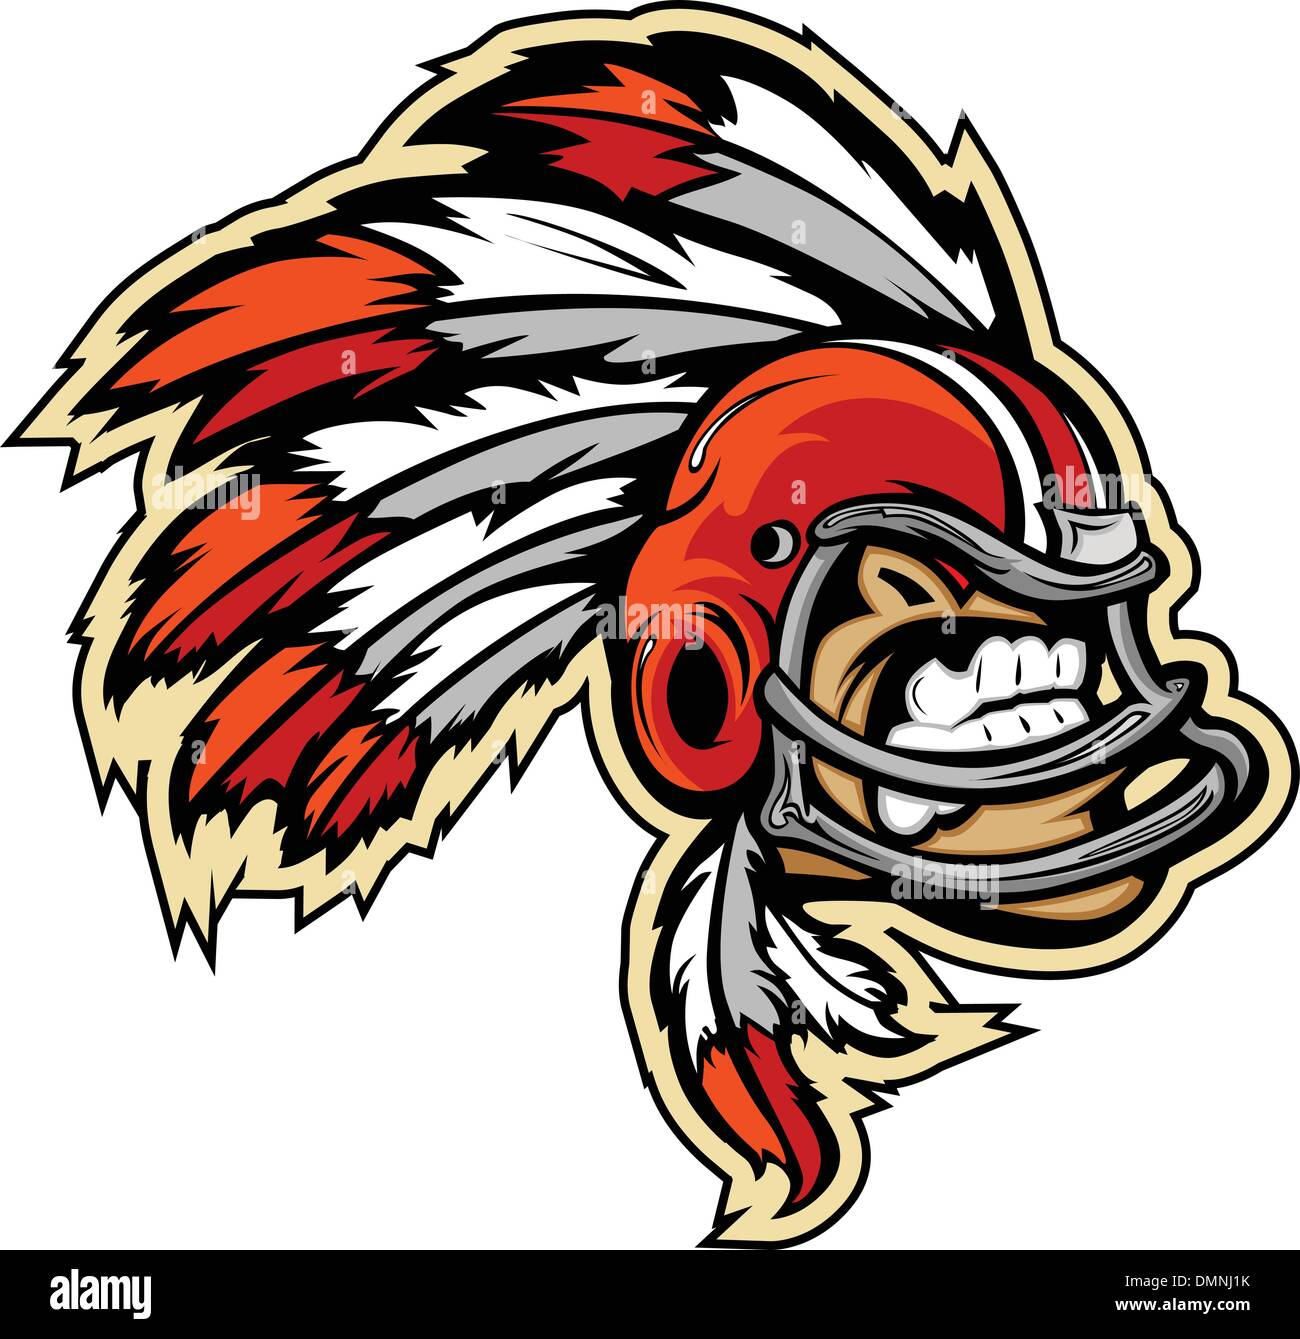 Indian Chief Football Mascot Wearing Helmet with Feathers Vector - Stock Image